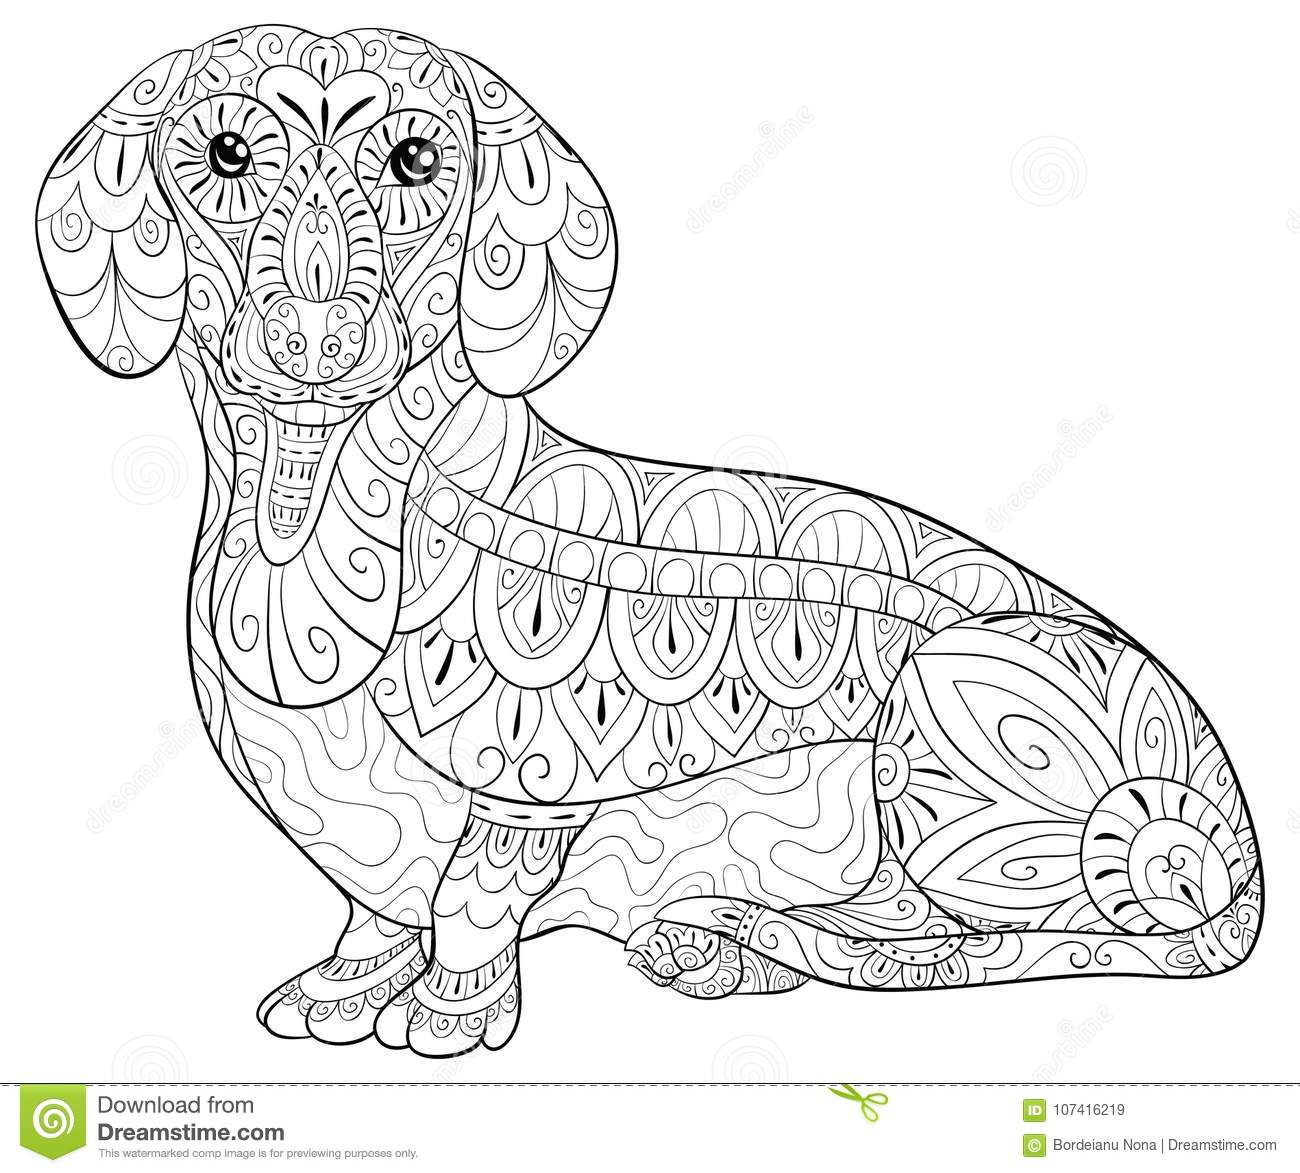 Adult Coloring Page A Cute Dachshund For Relaxing Zen Art Style